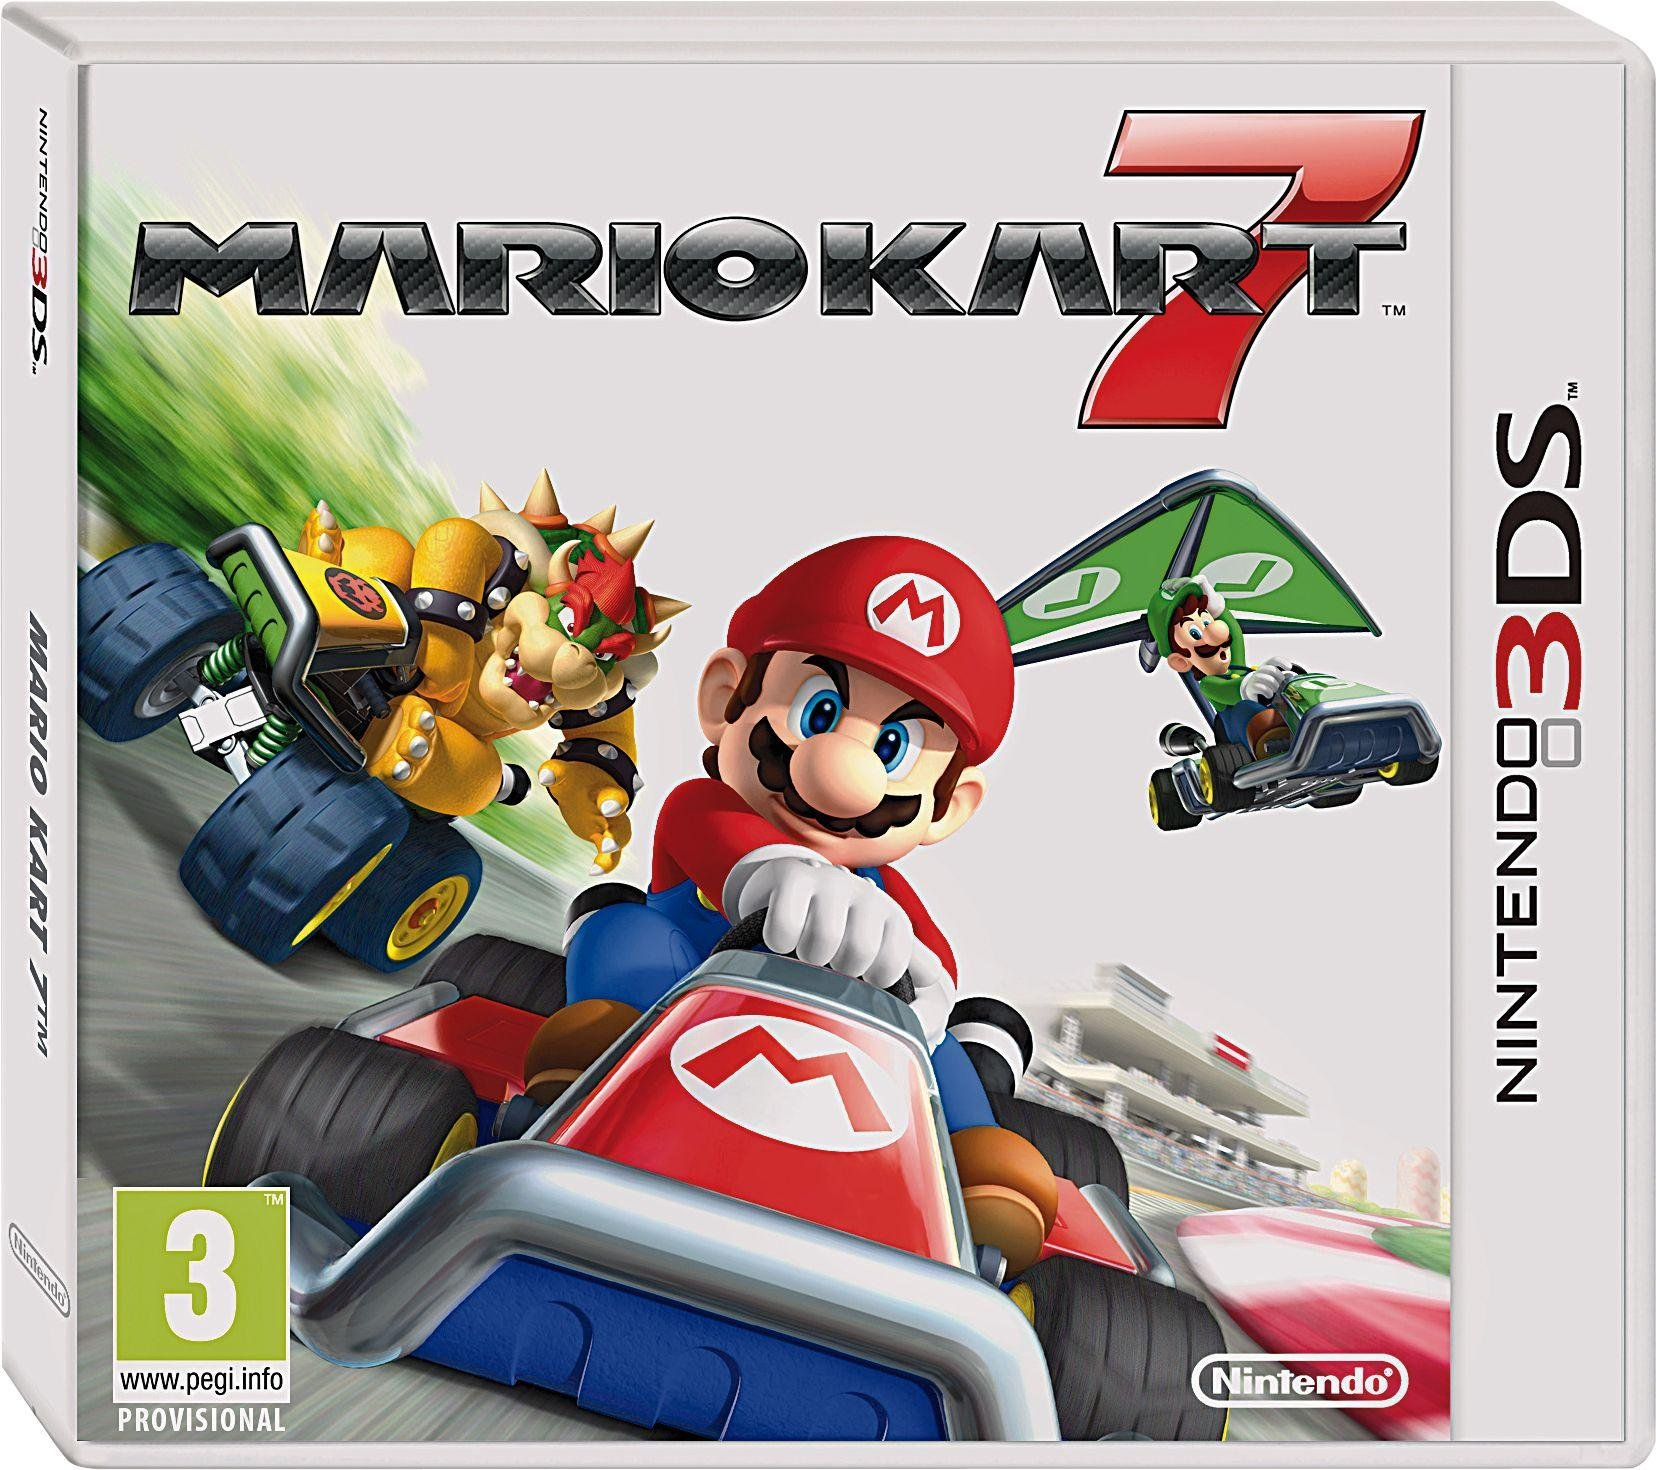 Nintendo Mario Kart 7 - 3DS Game.